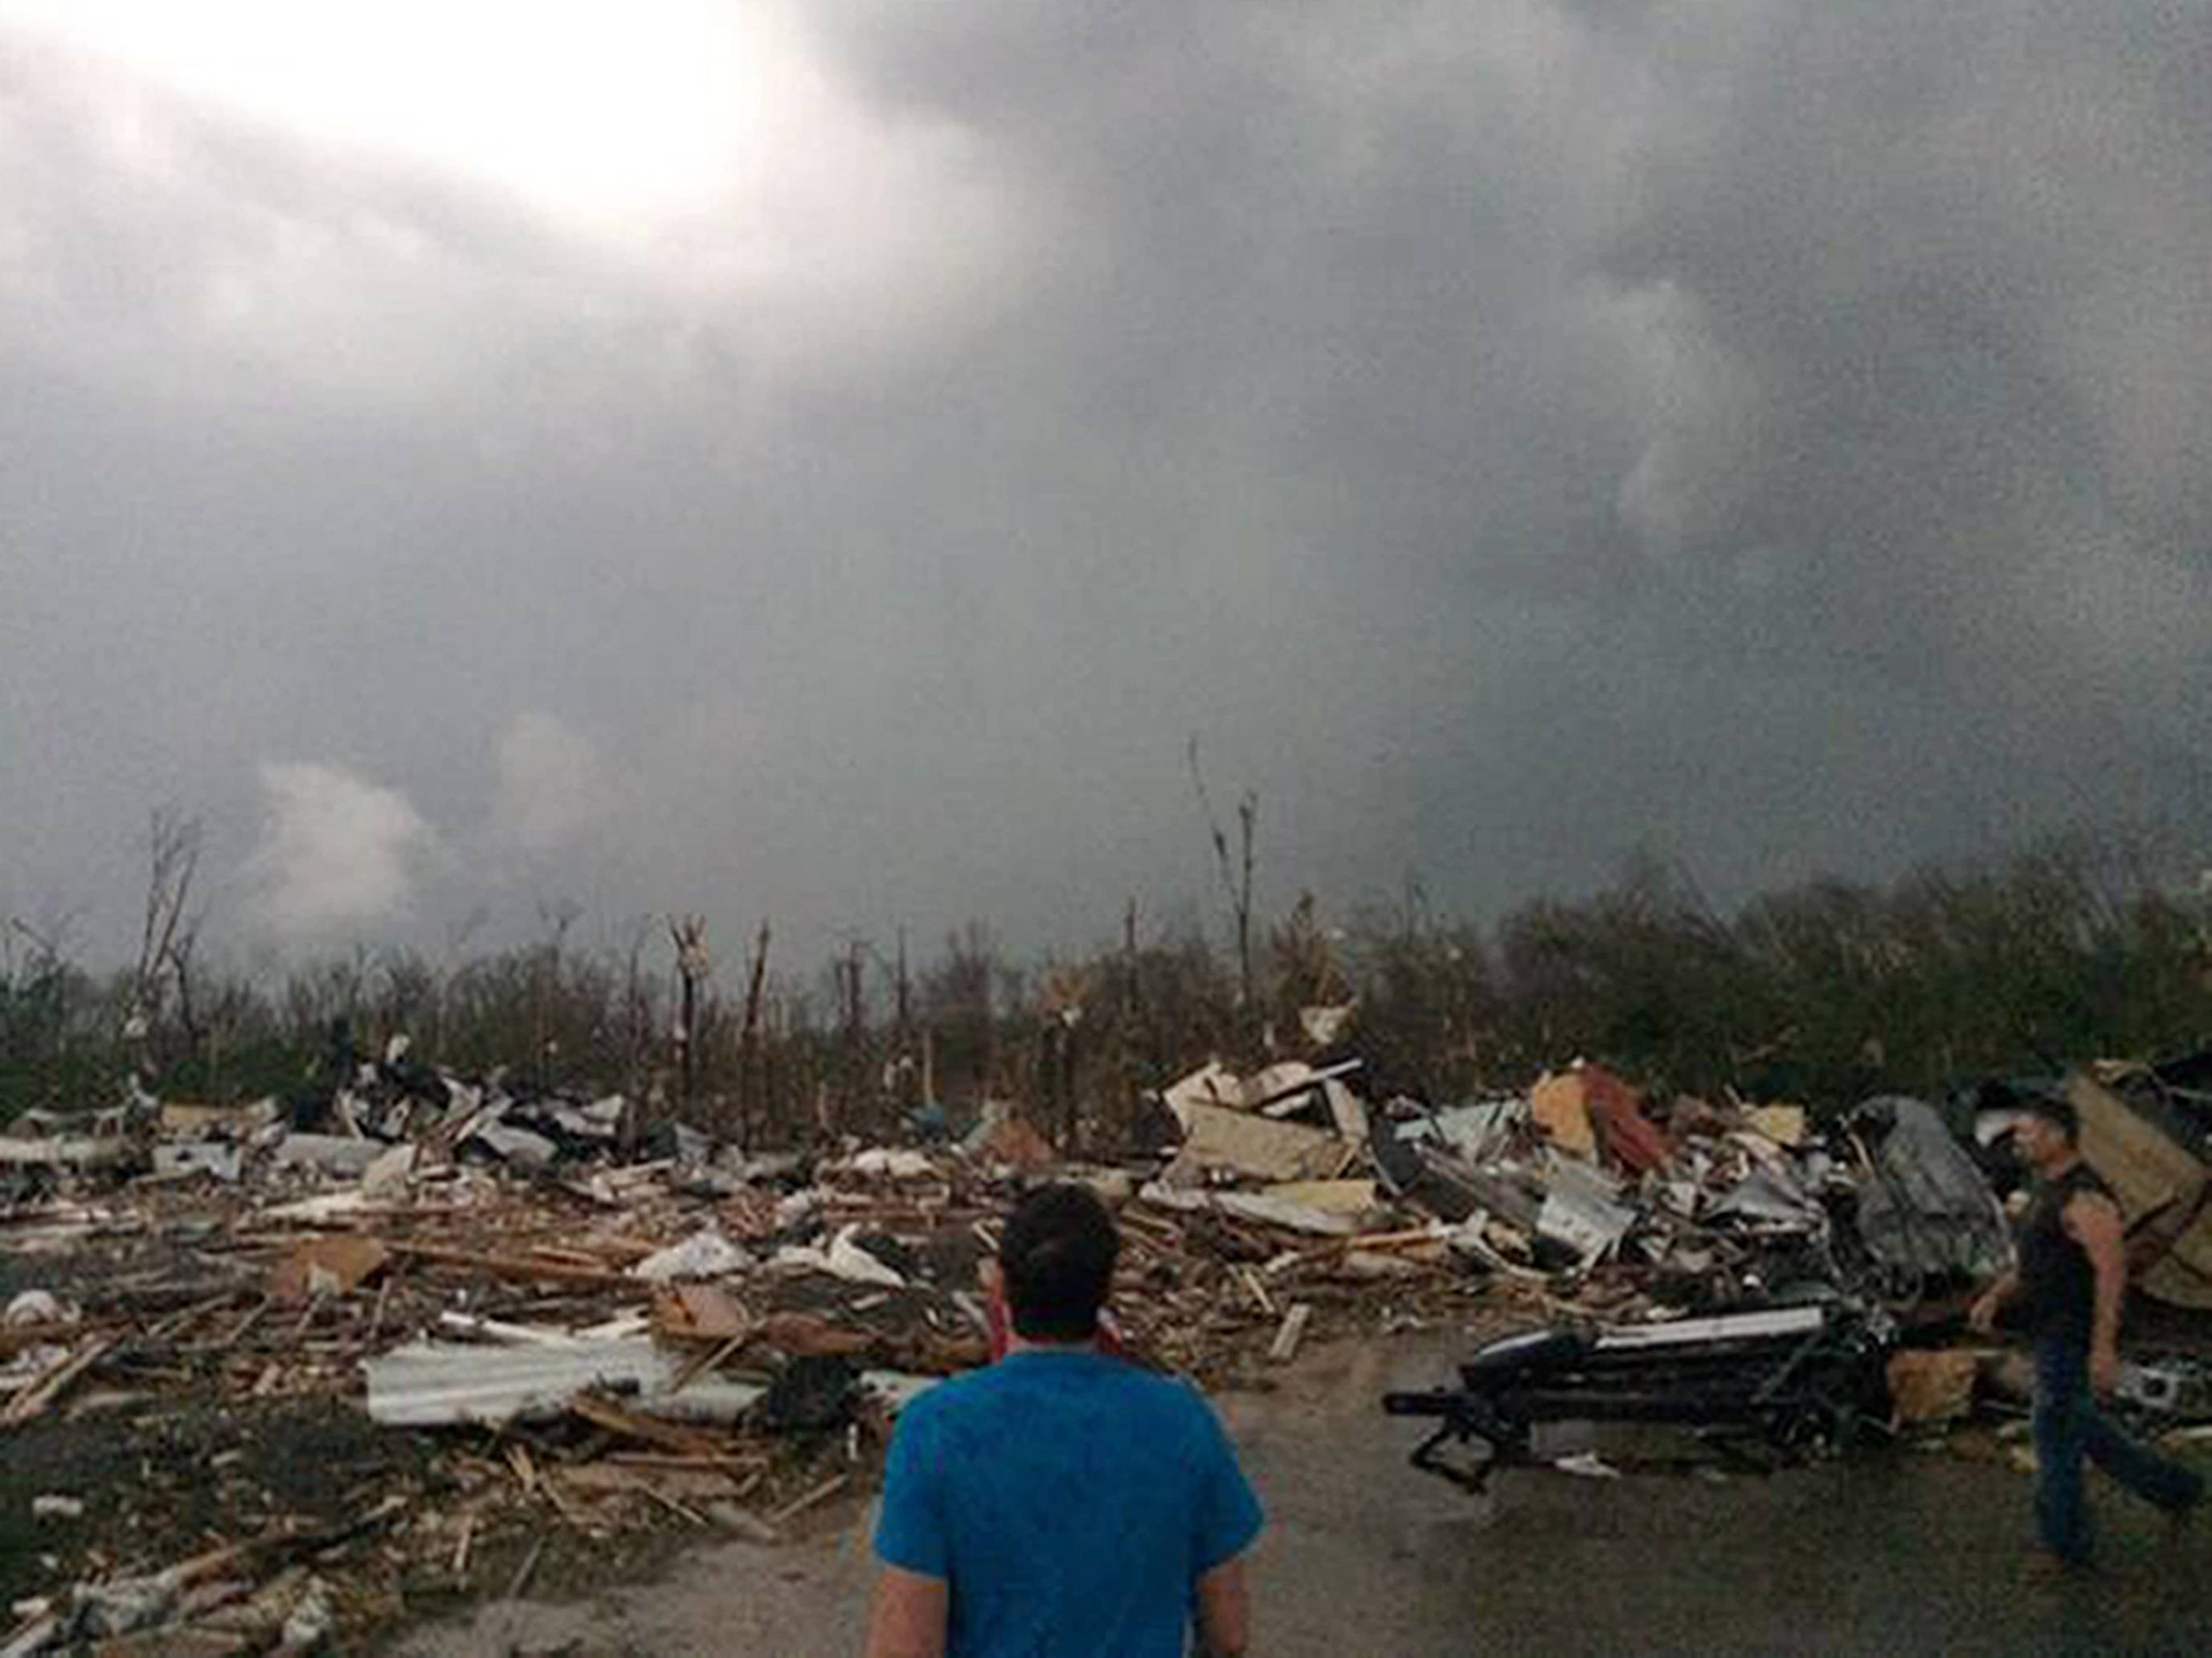 This photo provided by James Bryant shows tornado damage, Sunday, April 27, 2014 in Mayflower, Ark. A powerful storm system rumbled through the central and southern United States on Sunday, spawning several tornadoes, including one that killed two people in a small northeastern Oklahoma City and another that carved a path of destruction through several northern suburbs of Little Rock, Ark.